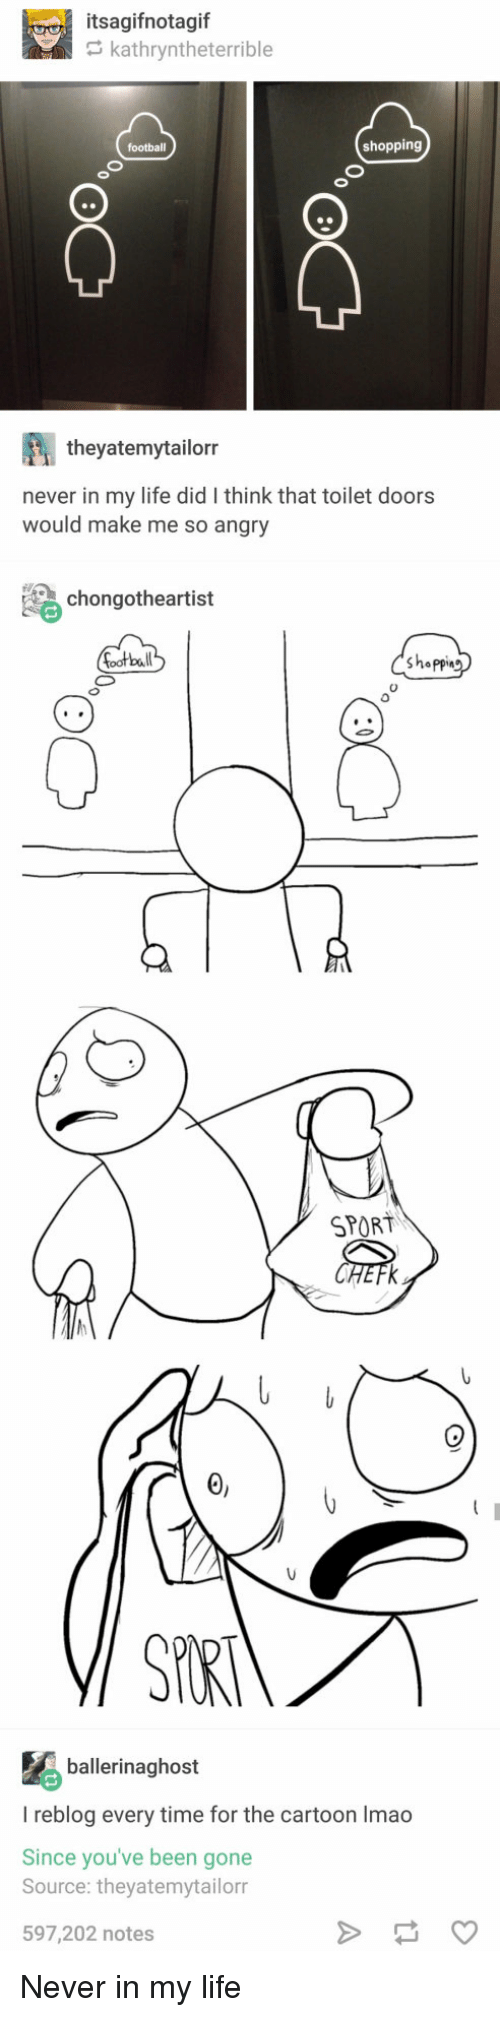 So Angry: itsagifnotagif  kathryntheterrible  shopping  theyatemytailorr  never in my life did I think that toilet doors  would make me so angry  chongotheartist  bal  shappin  0  SPORT  ballerinaghost  I reblog every time for the cartoon Imao  Since you've been gone  Source: theyatemytailorr  597,202 notes Never in my life